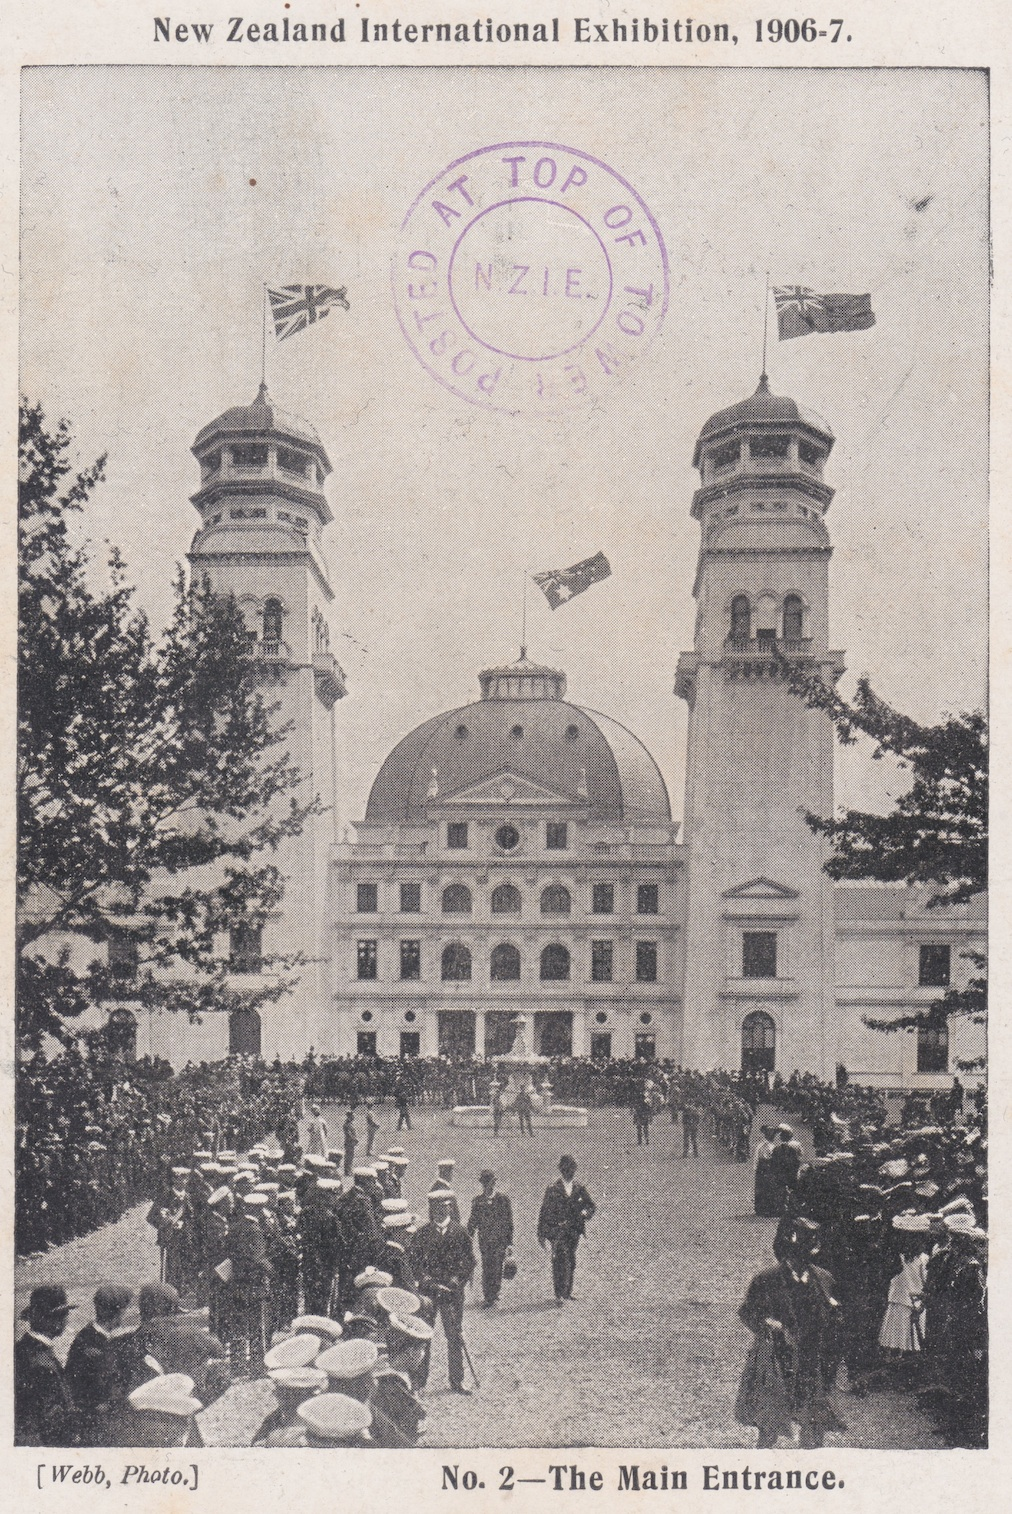 Entrance to the N.Z. Exhibition, Christchurch 1906-7. Lemuel Lyes Collection